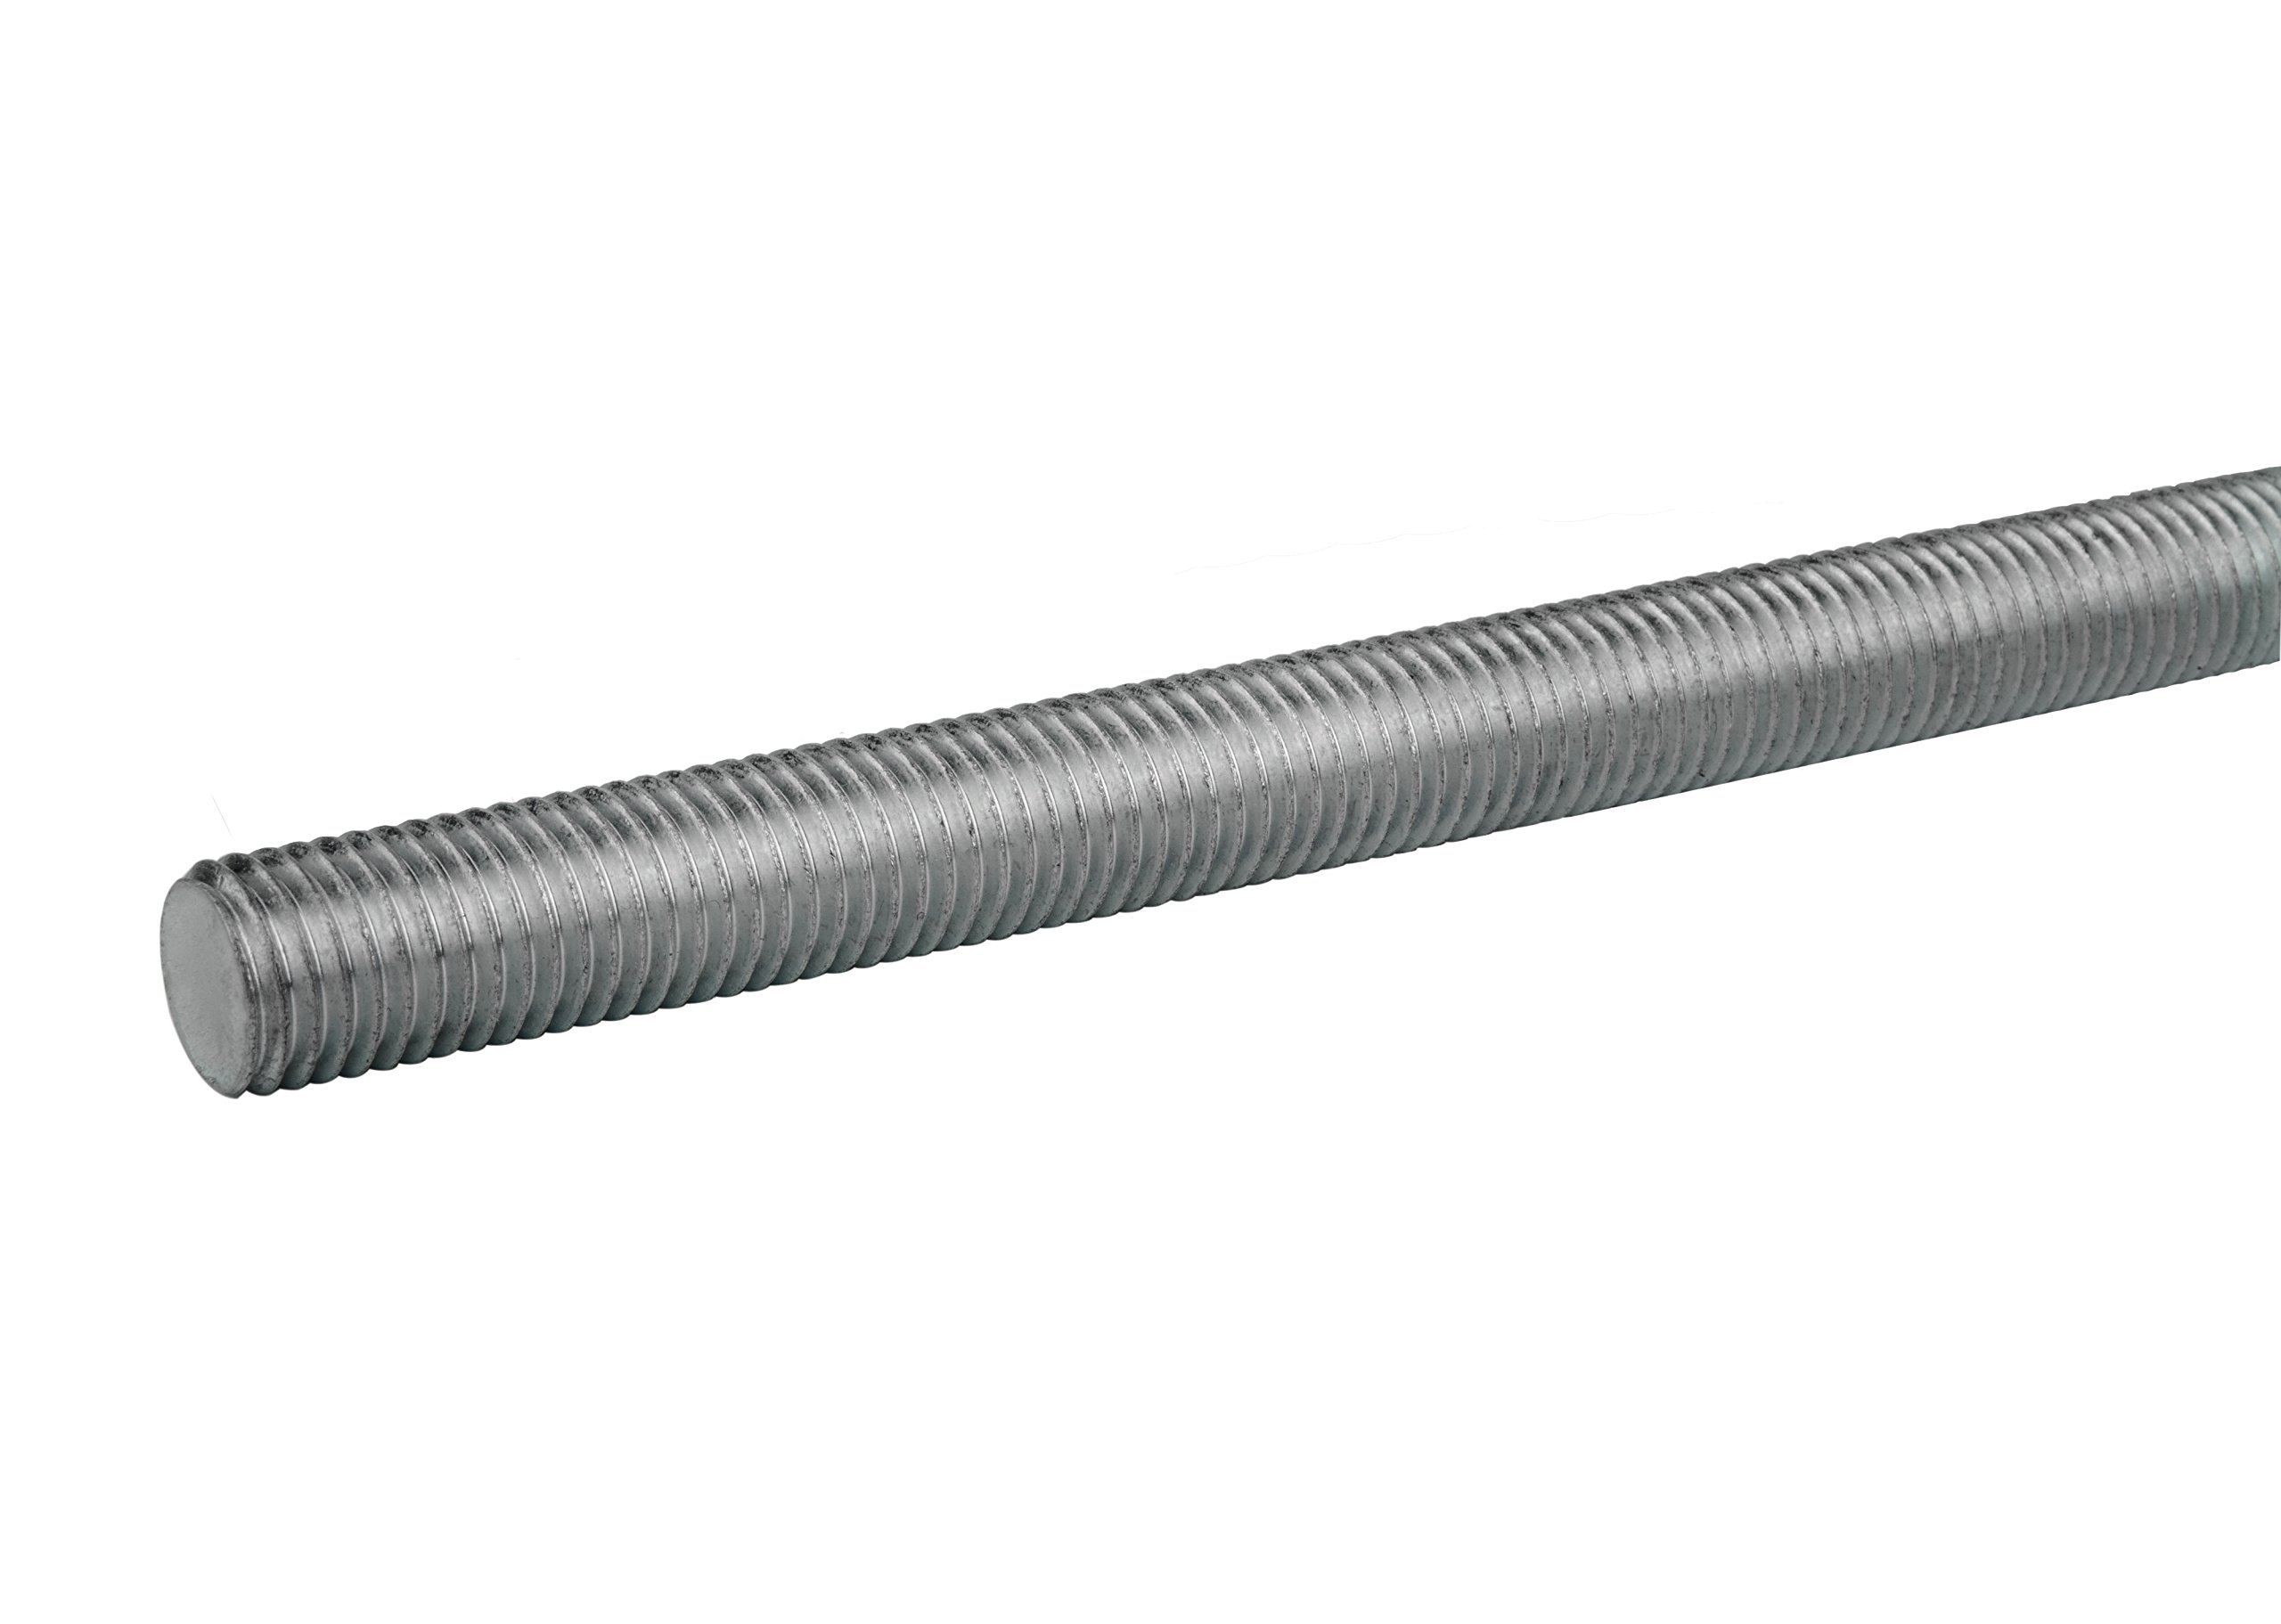 316 Stainless Steel Fully Threaded Rod, 1/2''-13 Thread Size, 72'' Length, Right Hand Threads